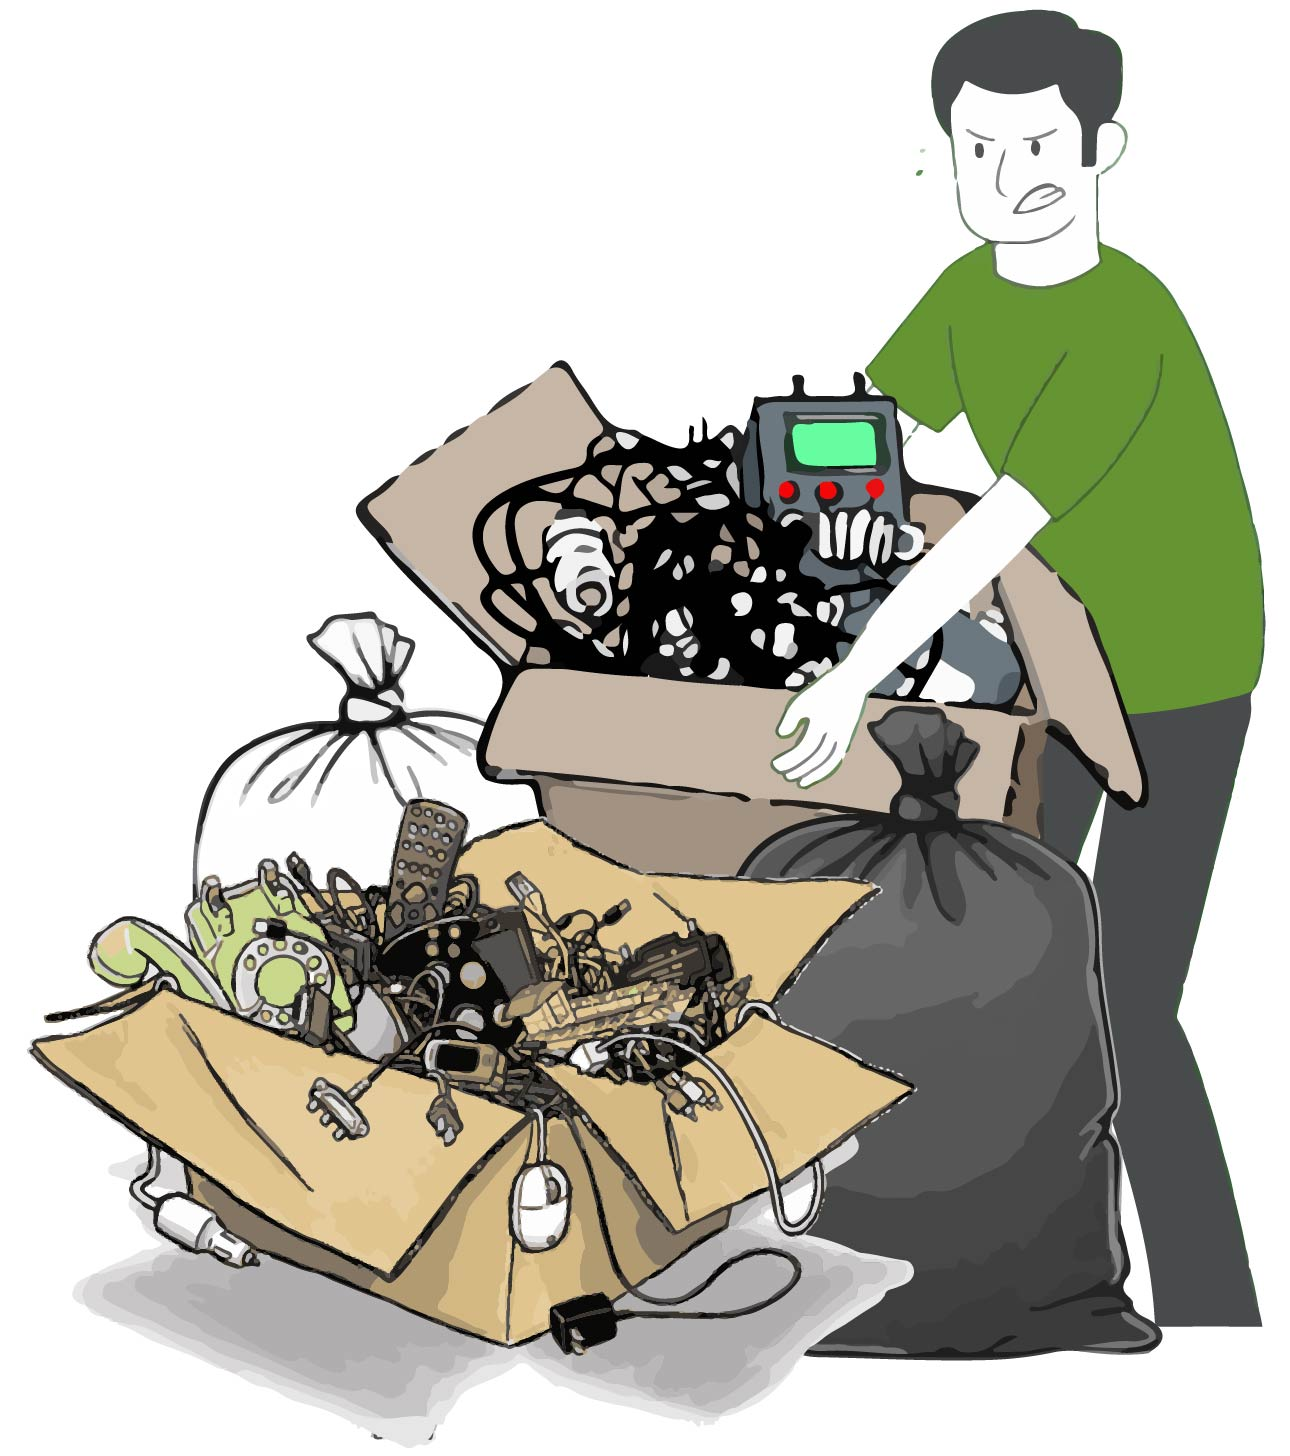 Affordable Junk Removal Services in Chester, CT